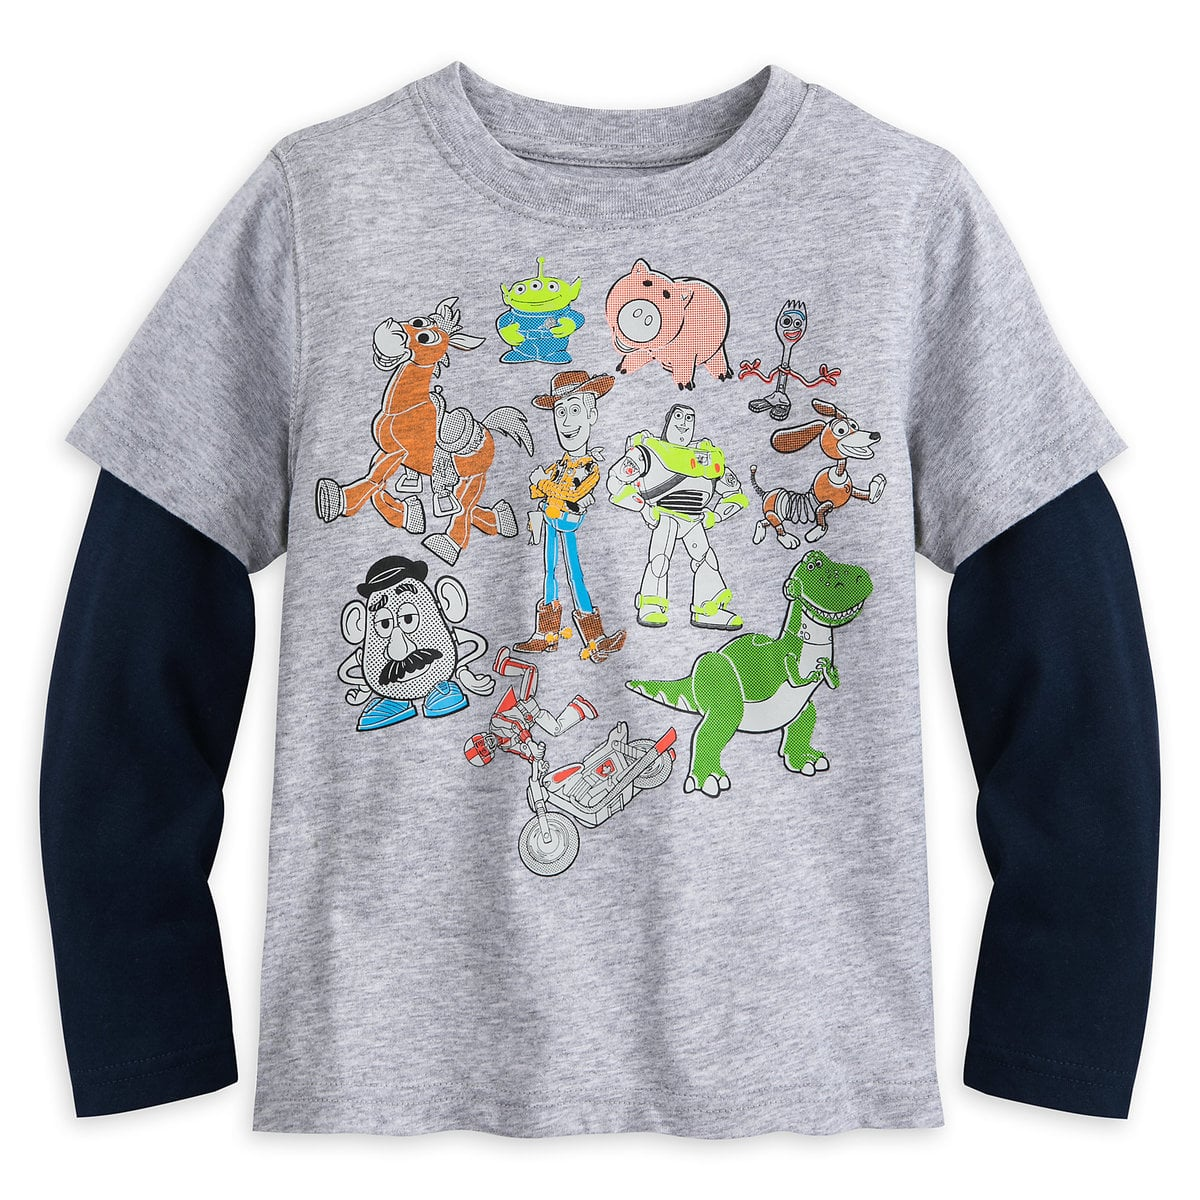 Toy Story 4 Layered T-Shirt